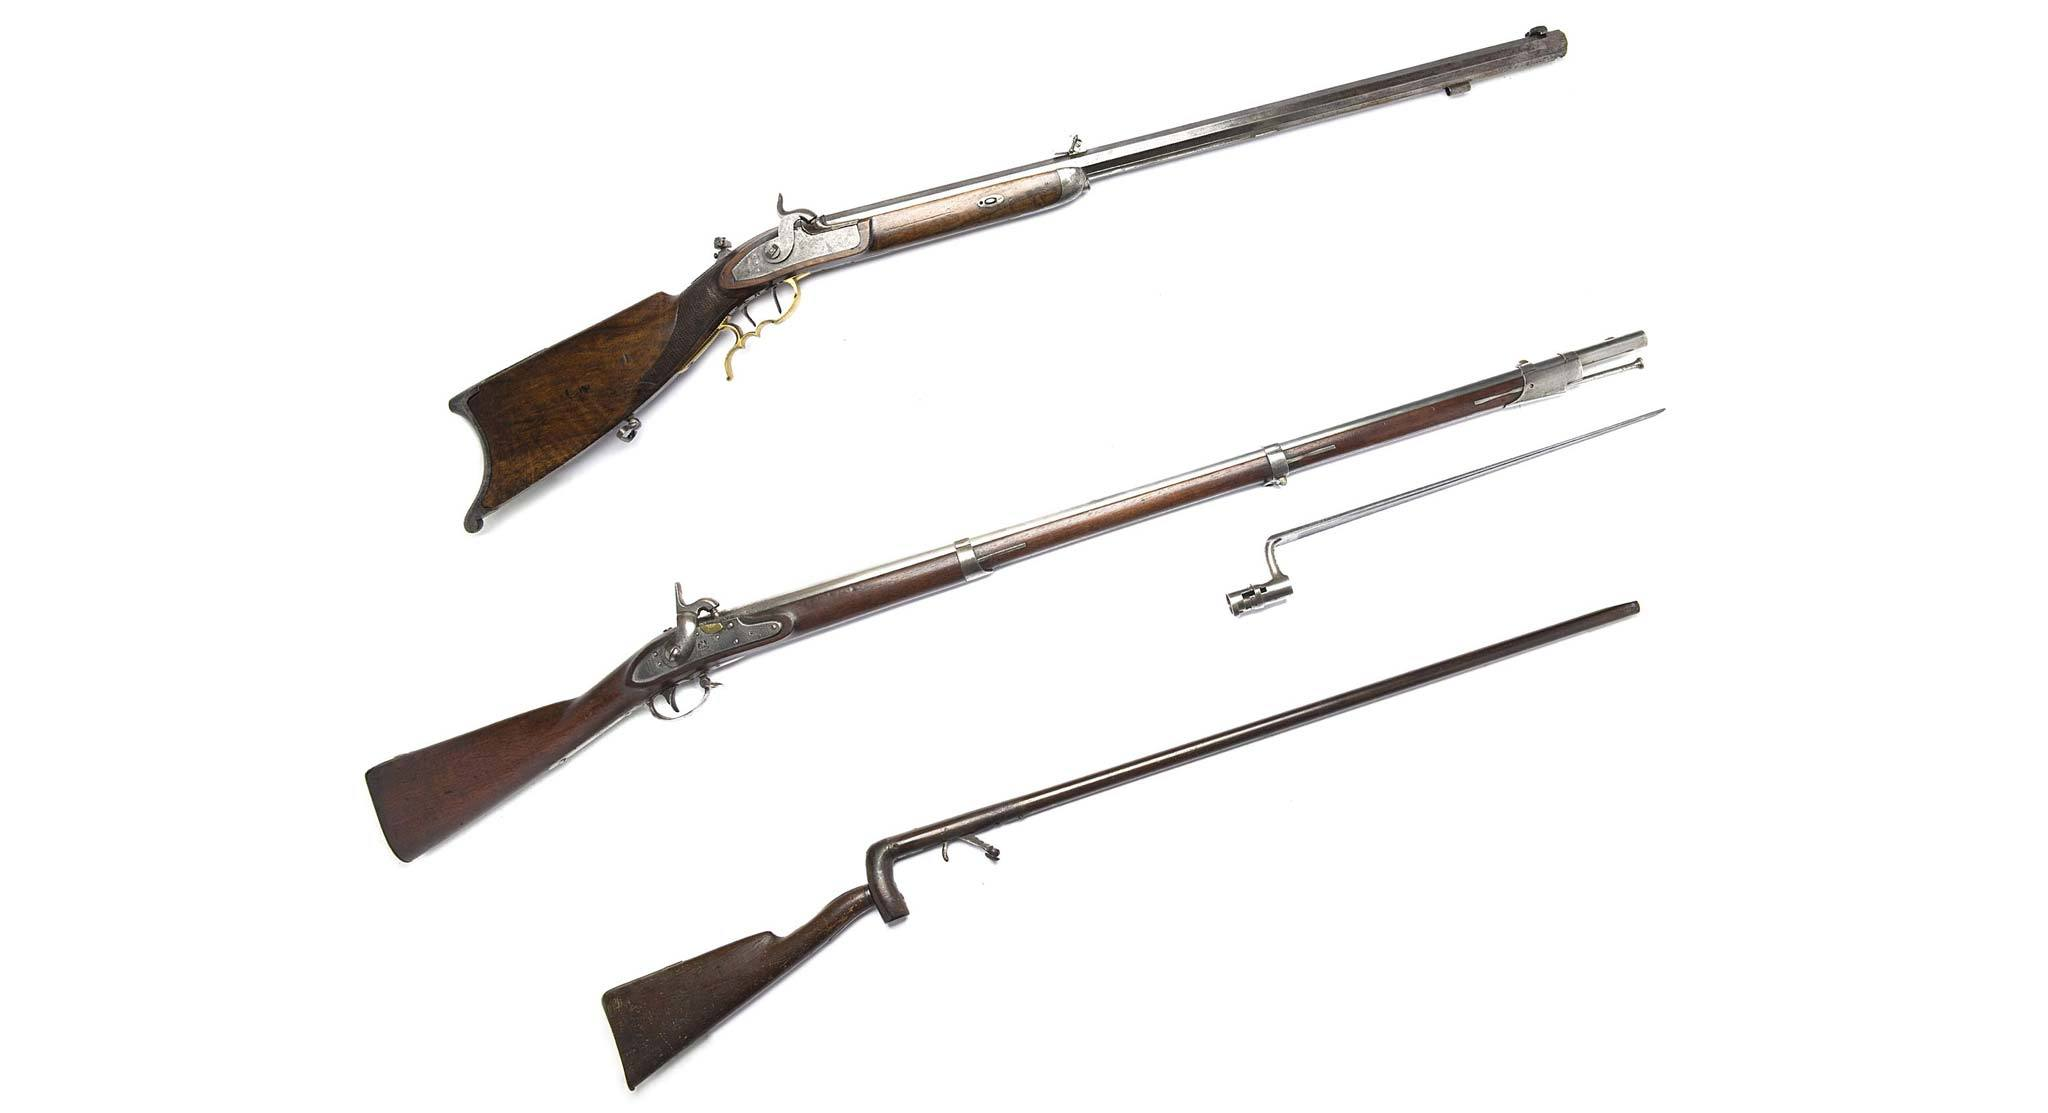 "(From top to bottom) Target rifle: American, c. 1855; Springfield Model 1816 musket c. 1834; Cane (or ""poacher's"") gun with removable stock, c. 1827"